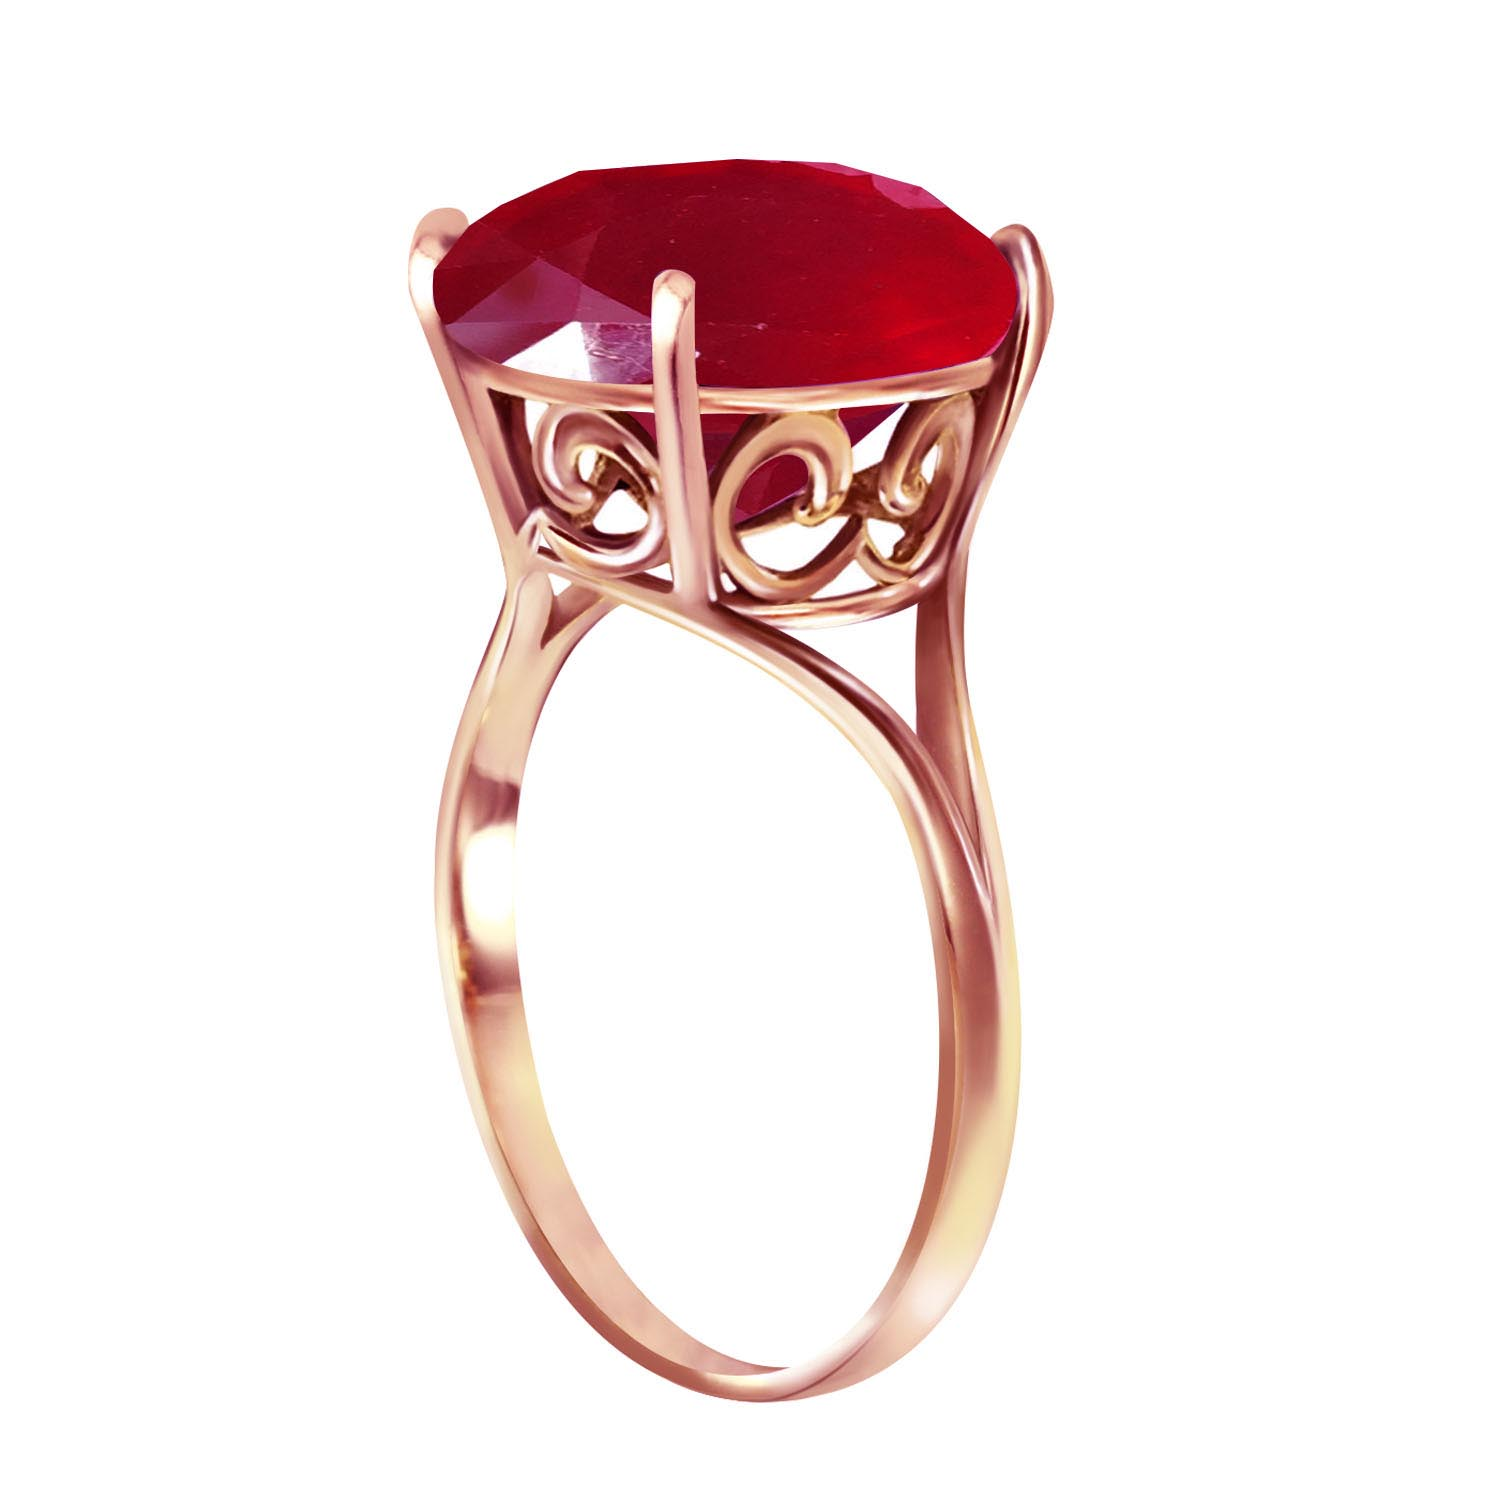 Round Brilliant Cut Ruby Ring 8.5ct in 9ct Rose Gold